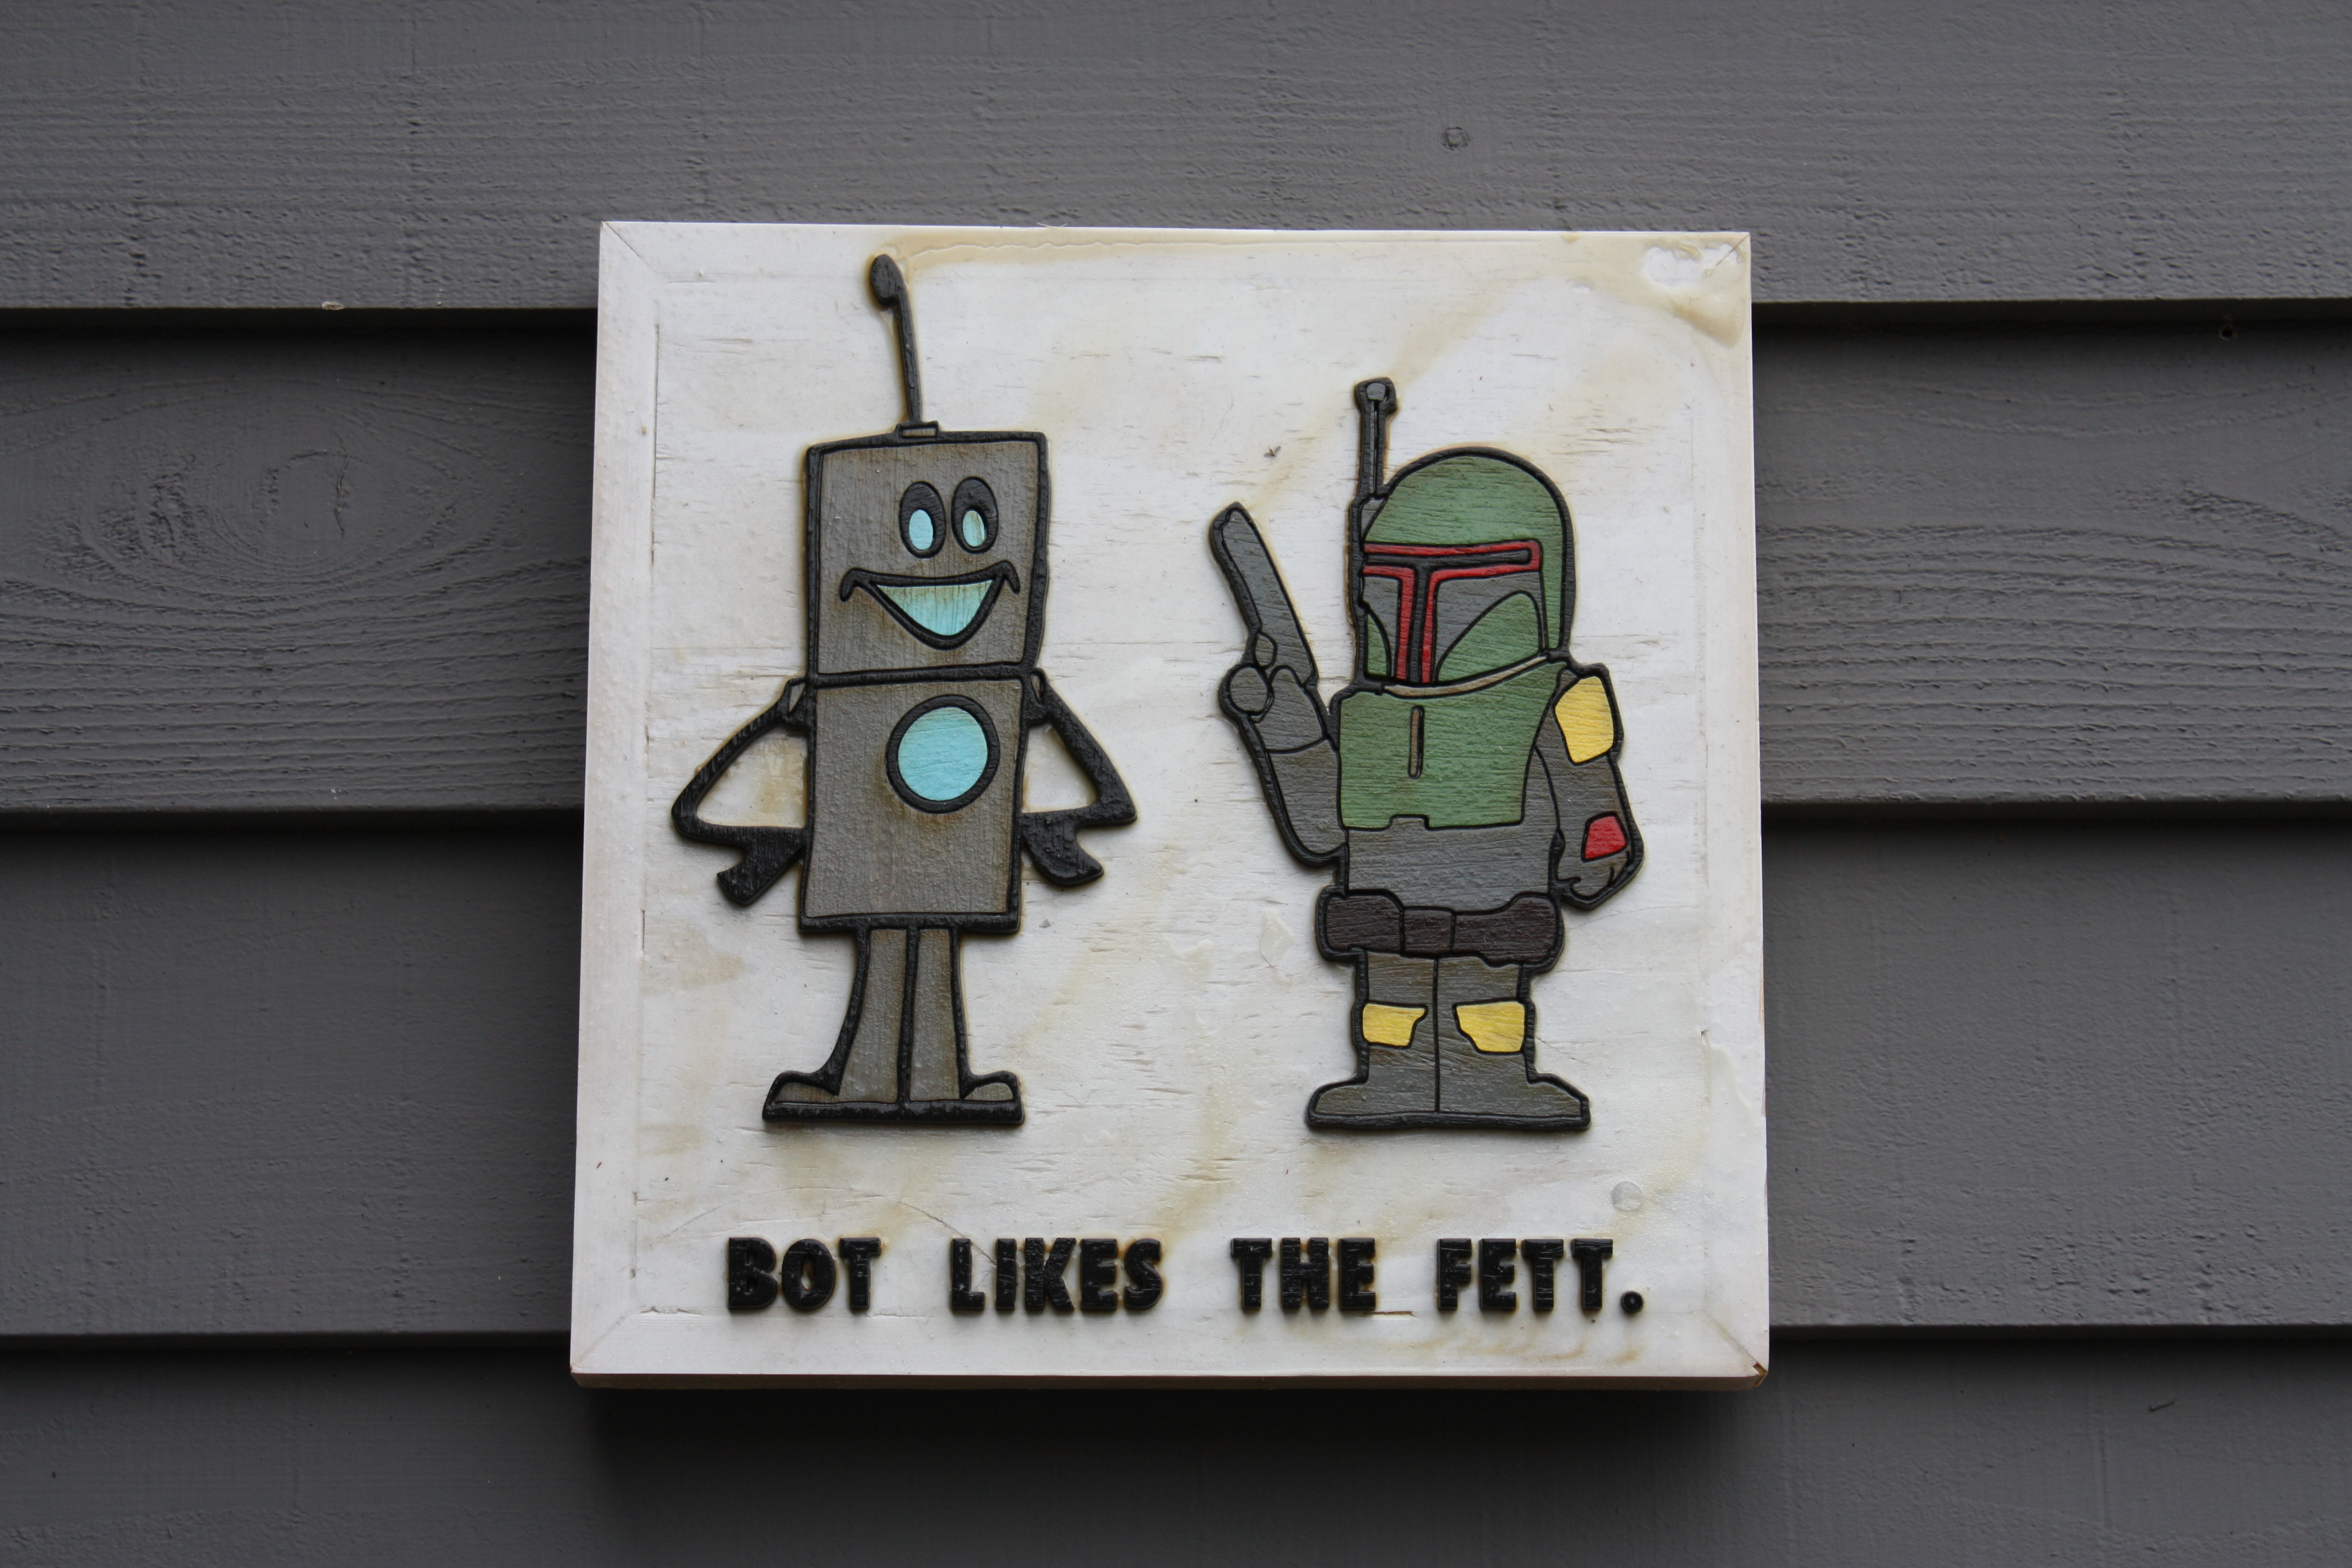 Bot Digs the Fett